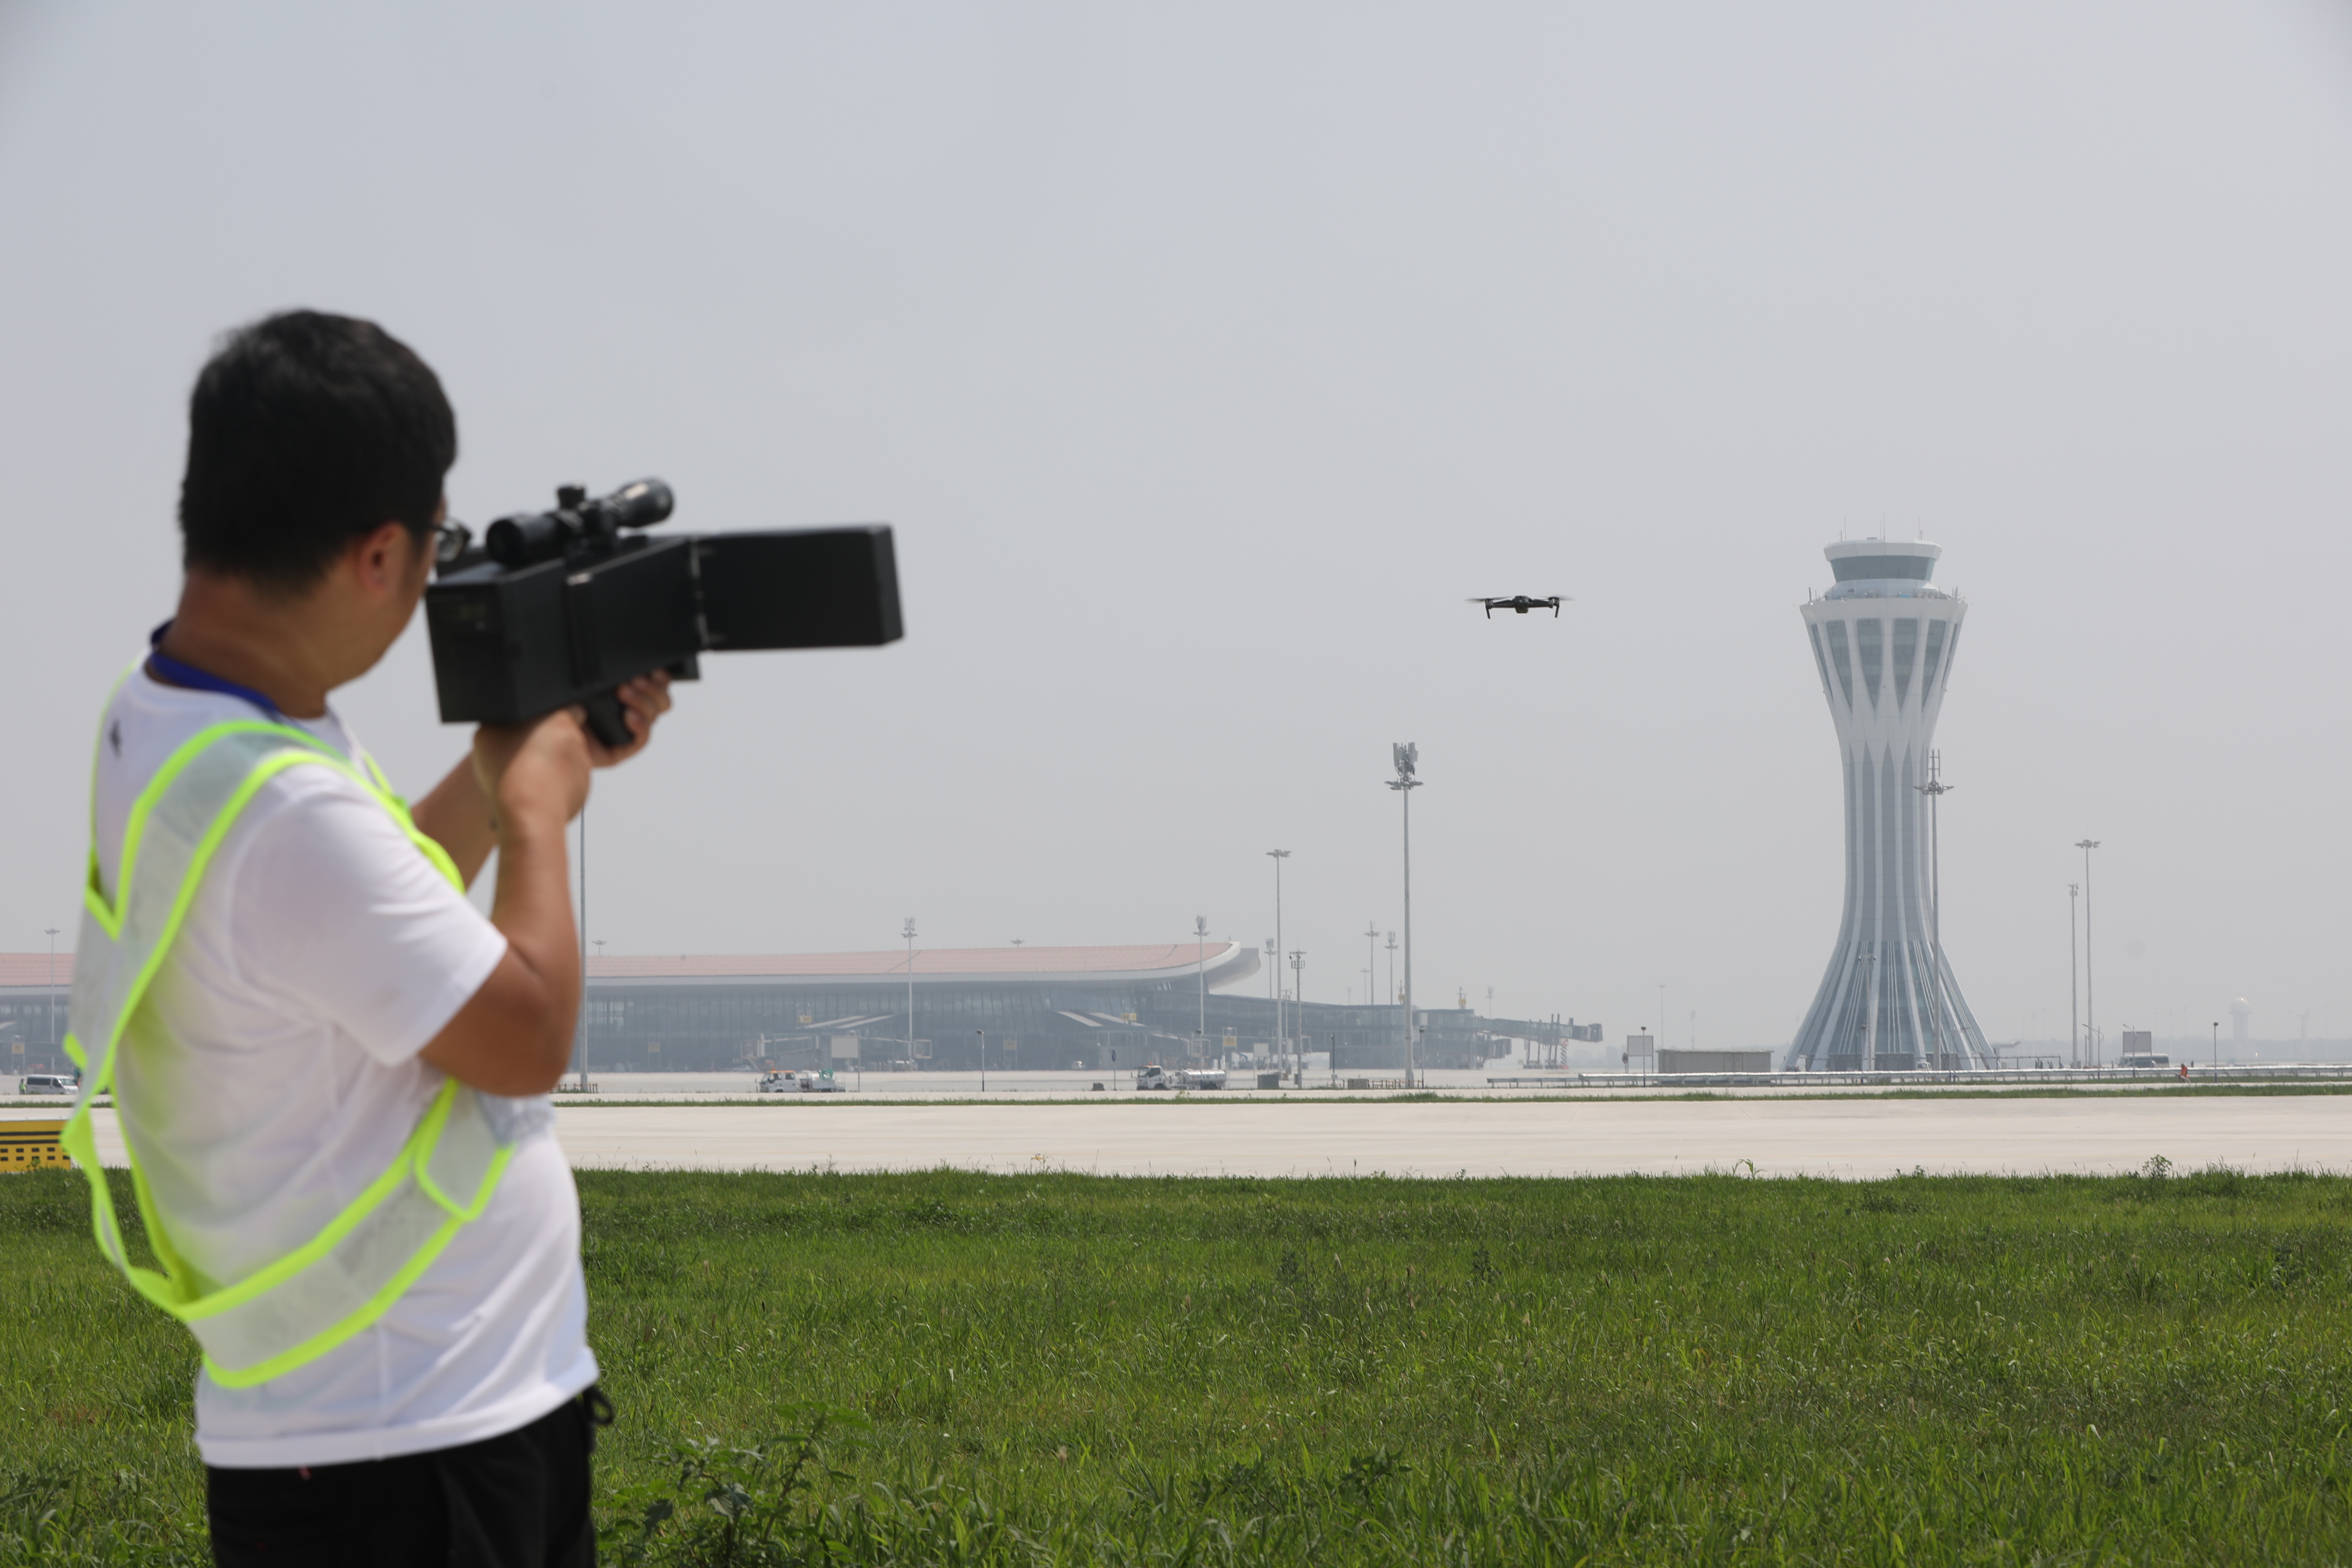 Staff take the test to keep drones away from Beijing Daxing International Airport with various devices, Beijing, China, 12 July 2019.  An Anti-drone test is conducted at Beijing Daxing International Airport before it comes into service in Beijing, China, 12 July 2019.No Use China. No Use France.